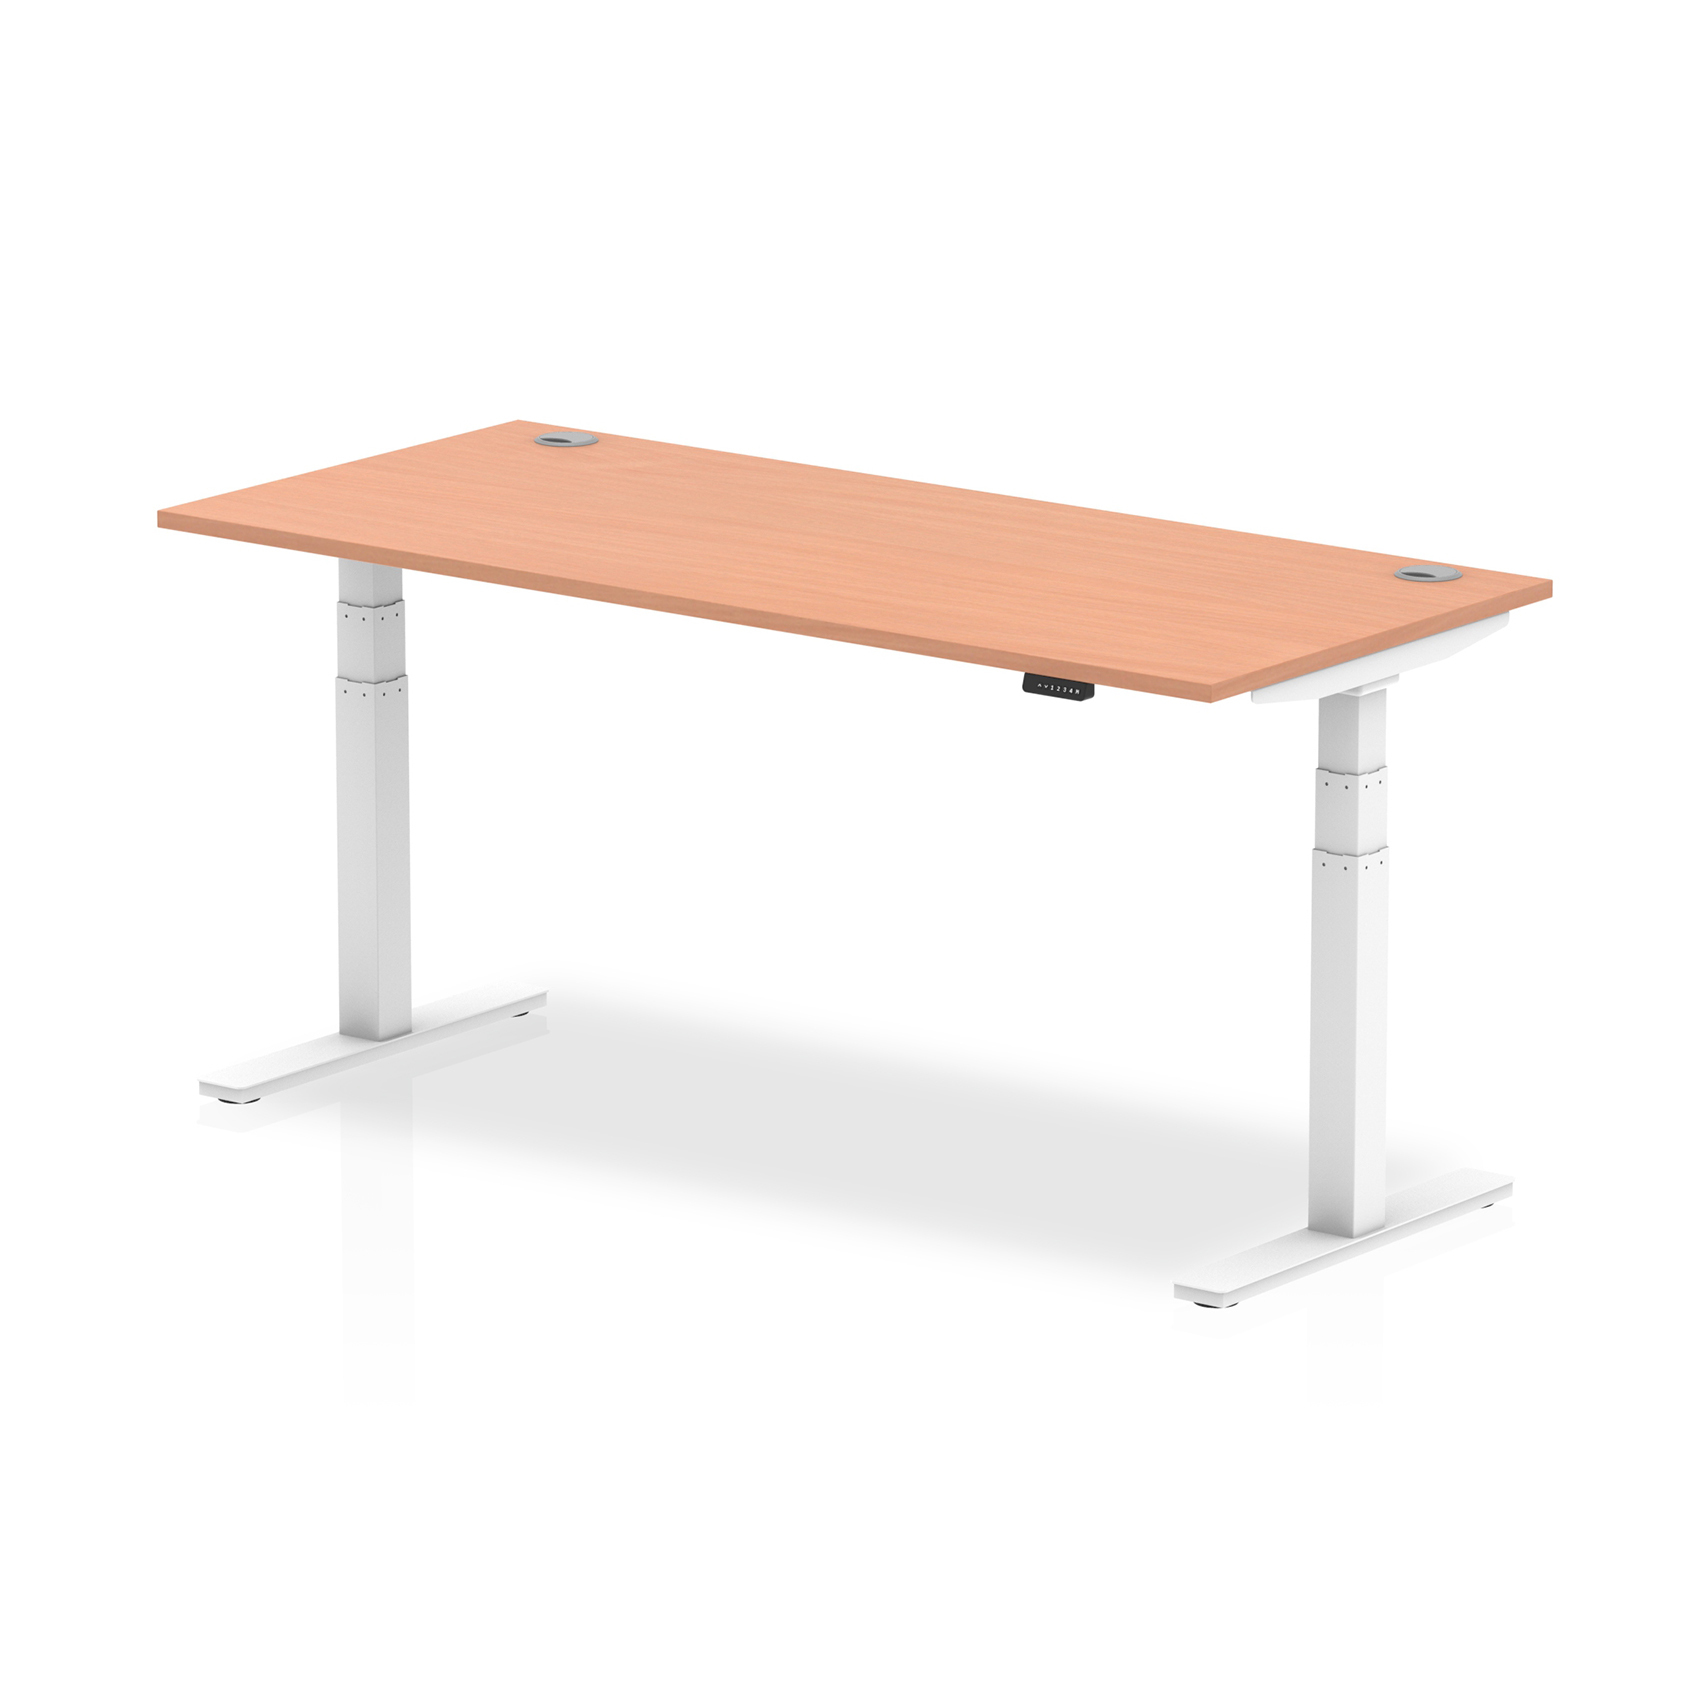 Trexus Sit Stand Desk With Cable Ports White Legs 1800x800mm Beech Ref HA01104